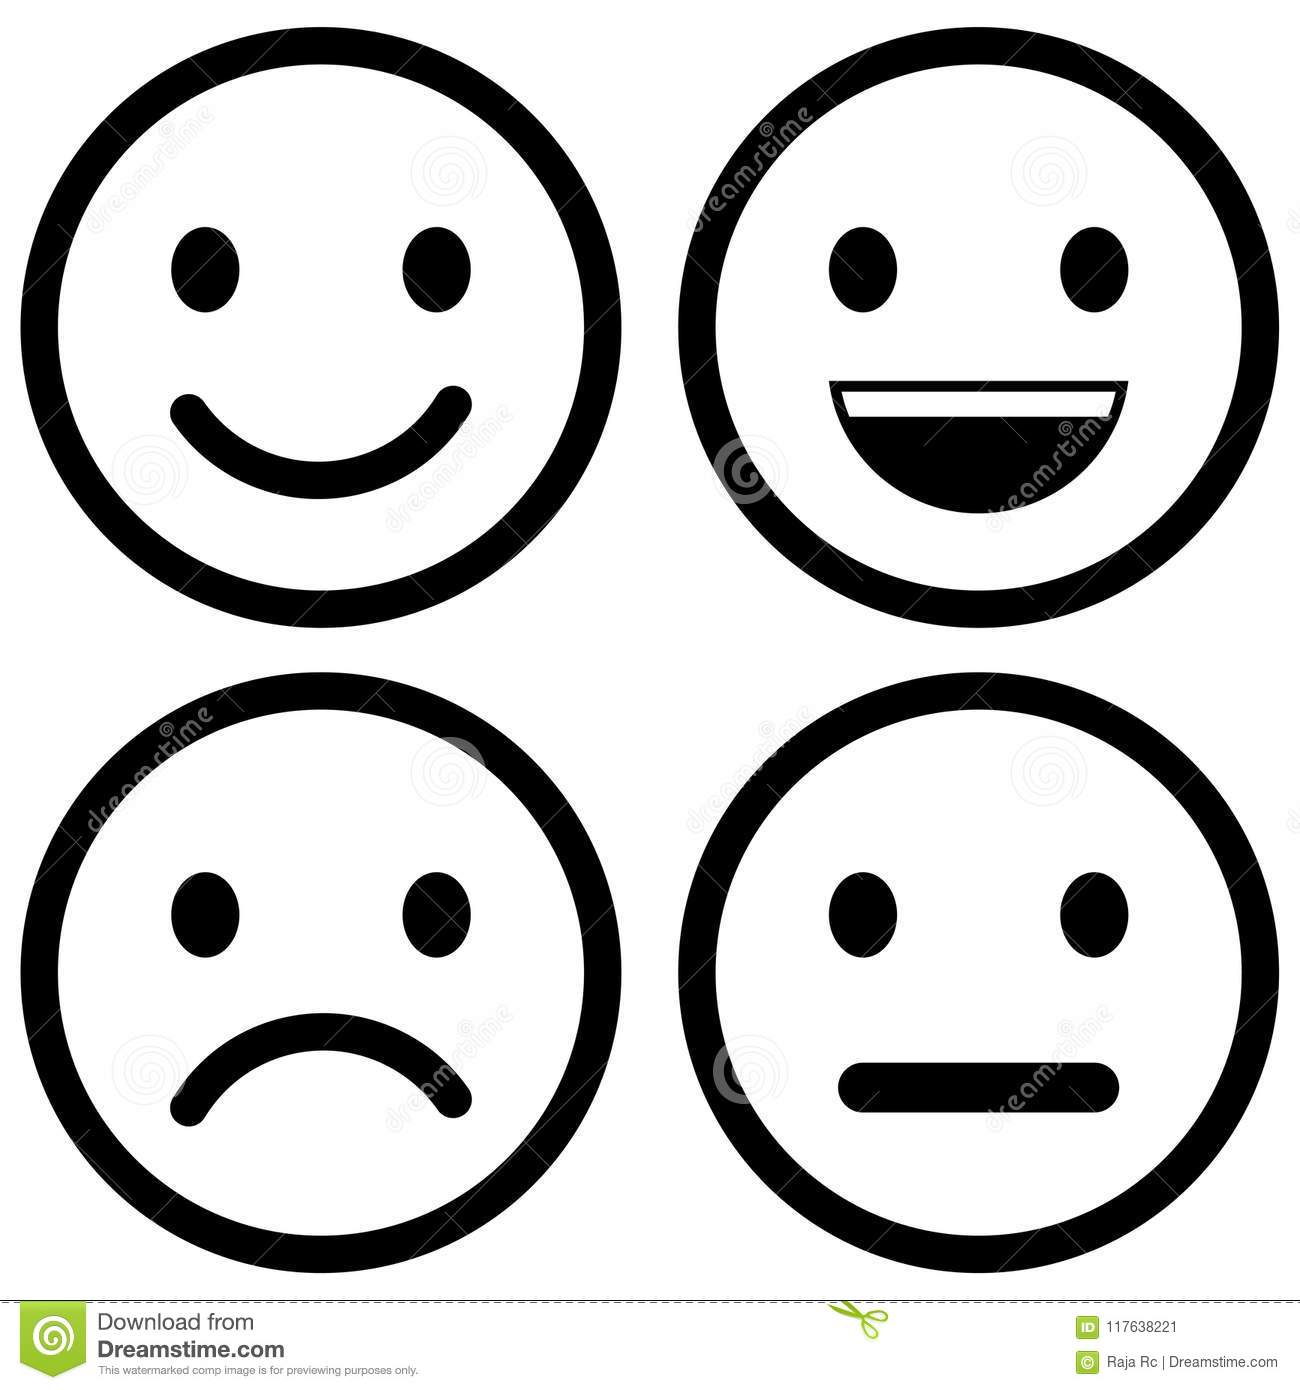 vector icon of smiley emotions stock vector illustration of crying doodles 117638221 https www dreamstime com illustration smiley emotion icons vector white background icon emotions image117638221